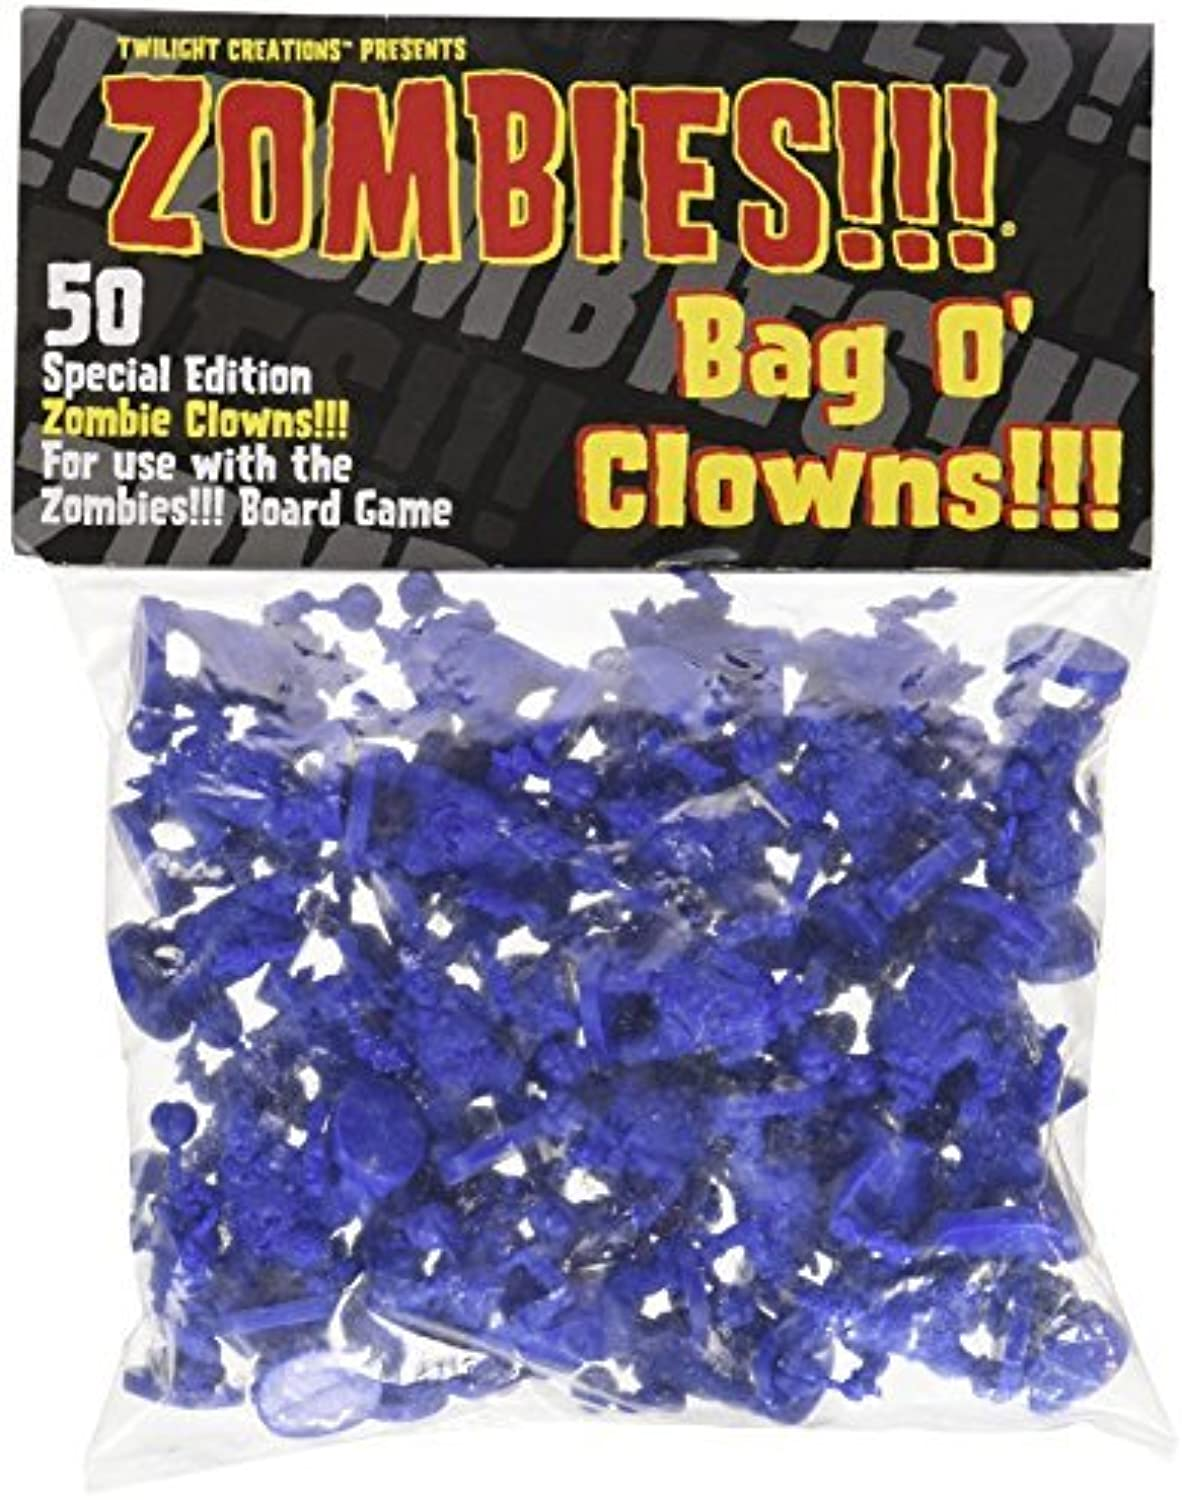 Twilight Creations Zombies Accessory Bag O 'Clowns Board Game by Twilight Creations, Inc